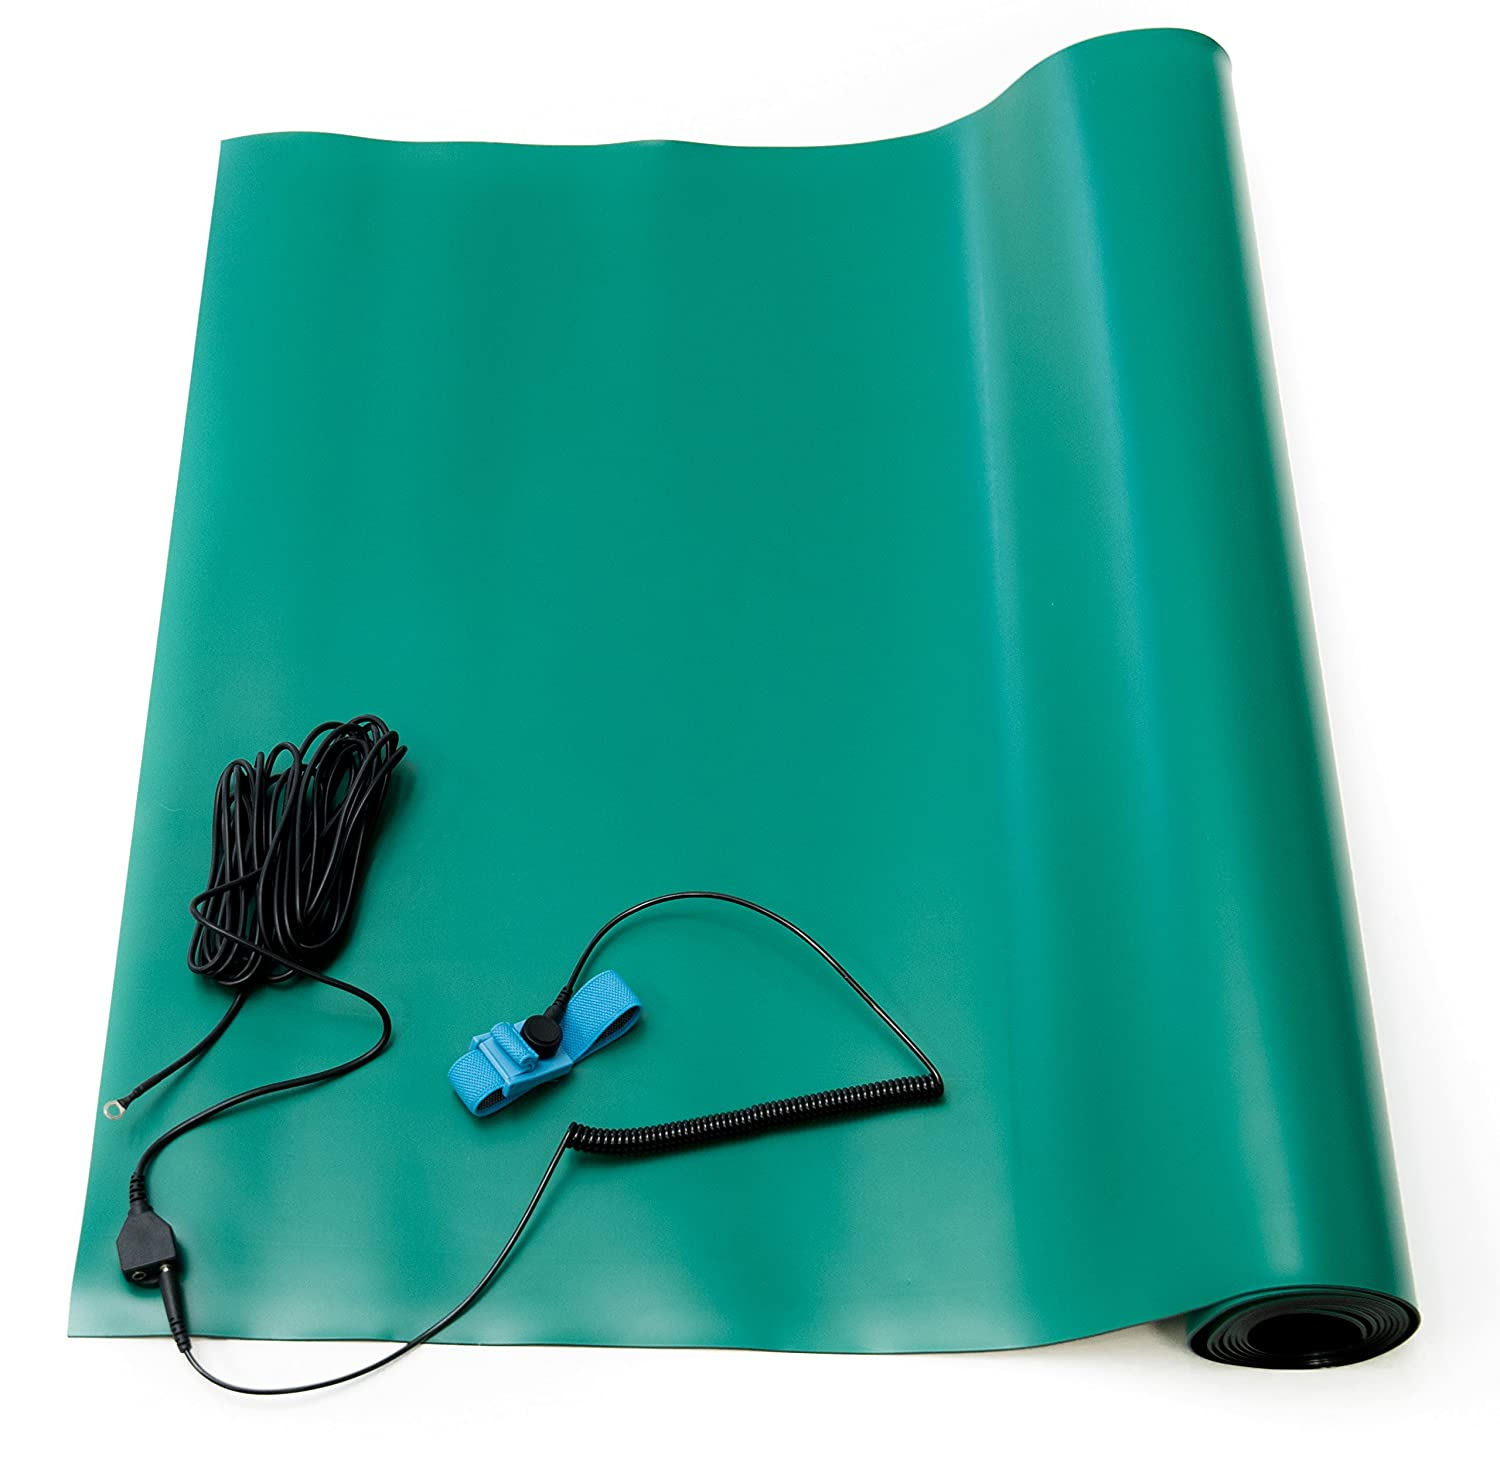 """Bertech 2059T-18x36GNKT Green Rubber ESD High Temperature Mat Kit with a Wrist Strap and Grounding Cord, 18"""" Wide x 36"""" Long x 0.093"""" Thick 91rmtqK4alL"""